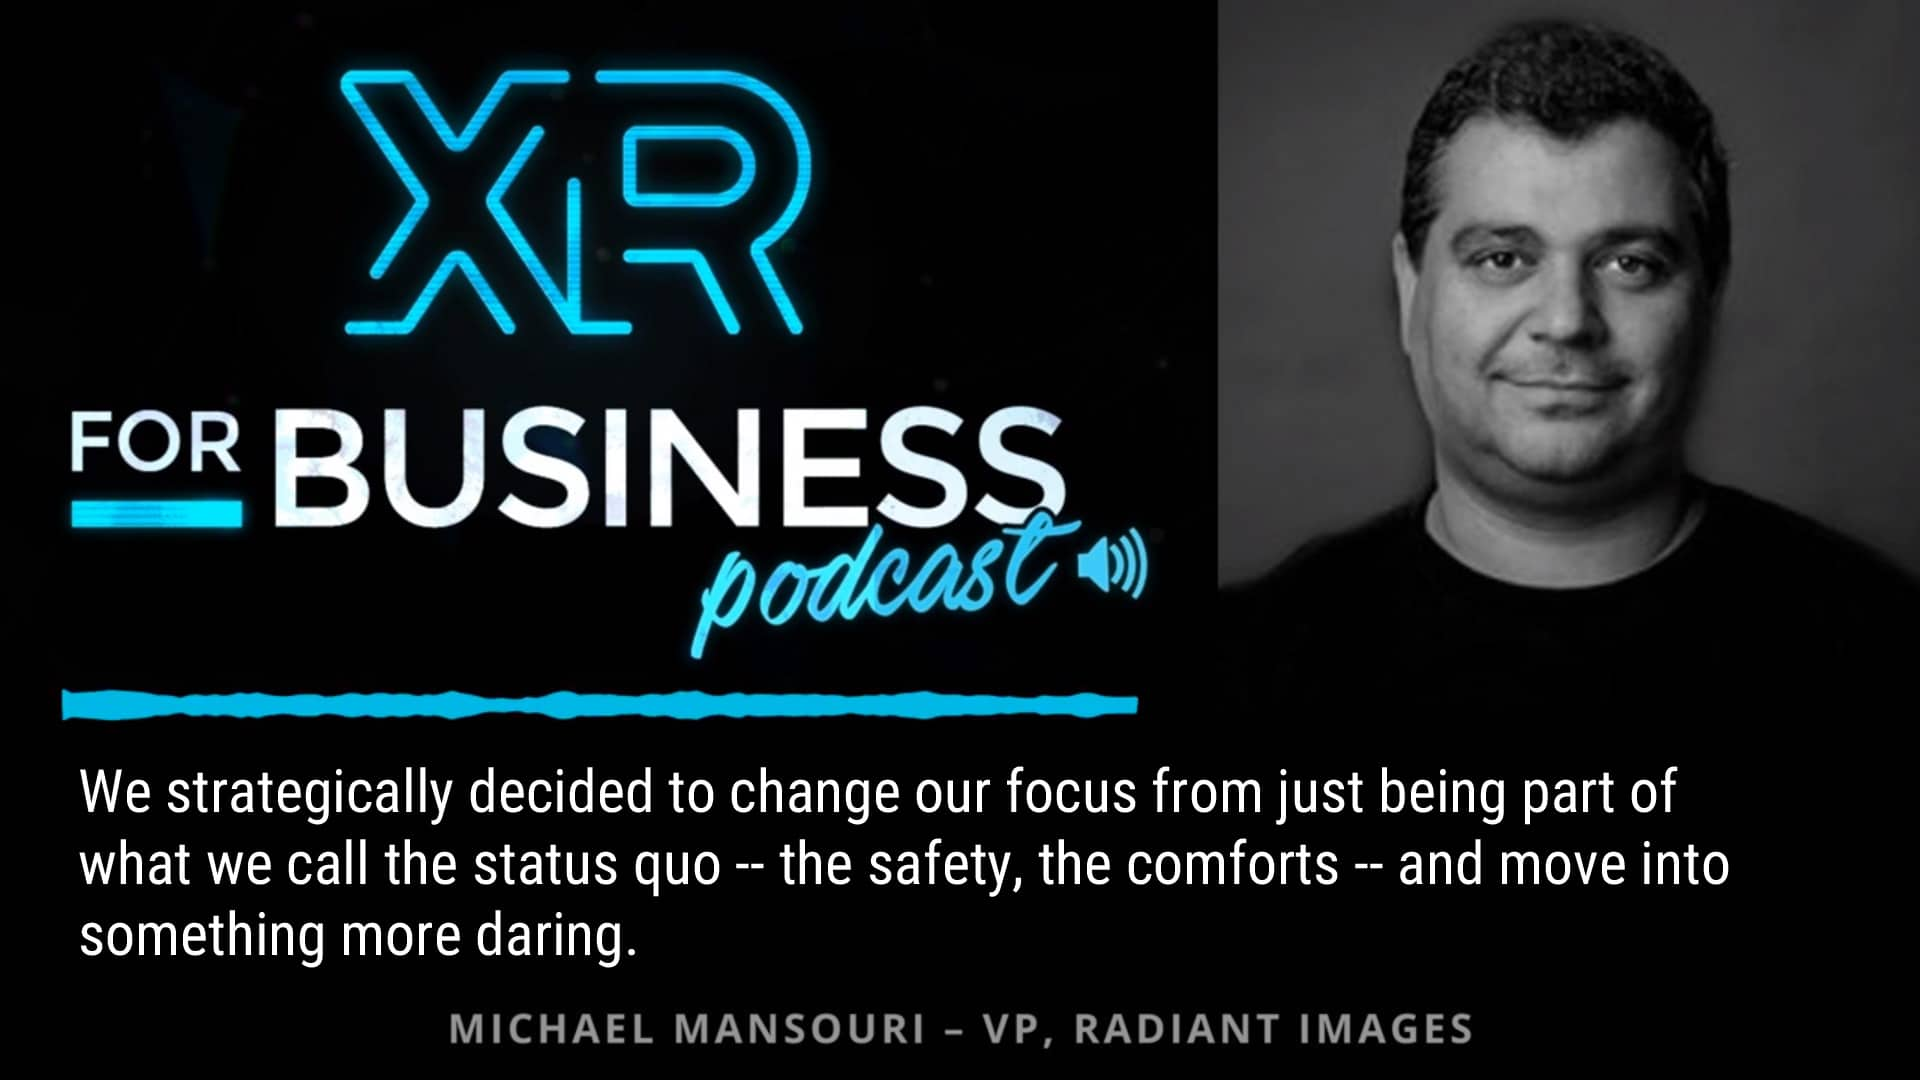 Michael Mansouri Discusses Immersive Technology Trends on the XR for Business Podcast